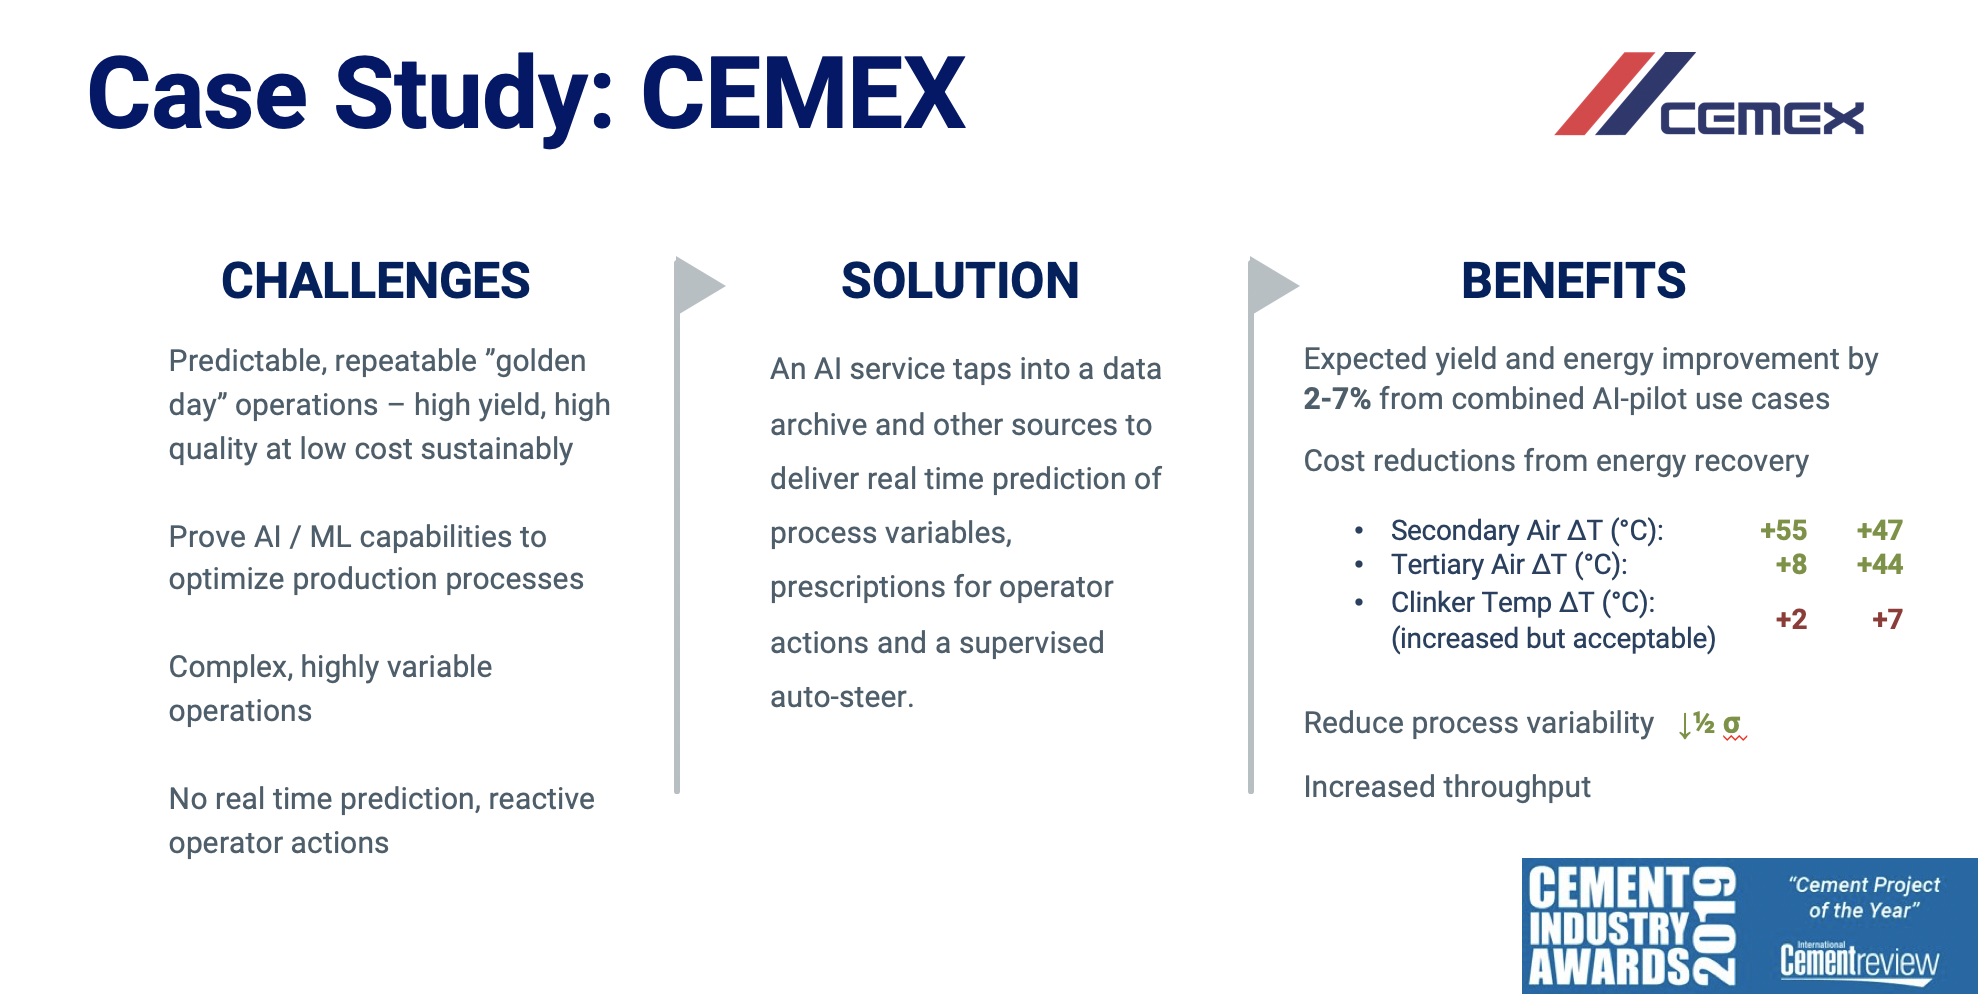 Case Study_CEMEX Results for cement operations